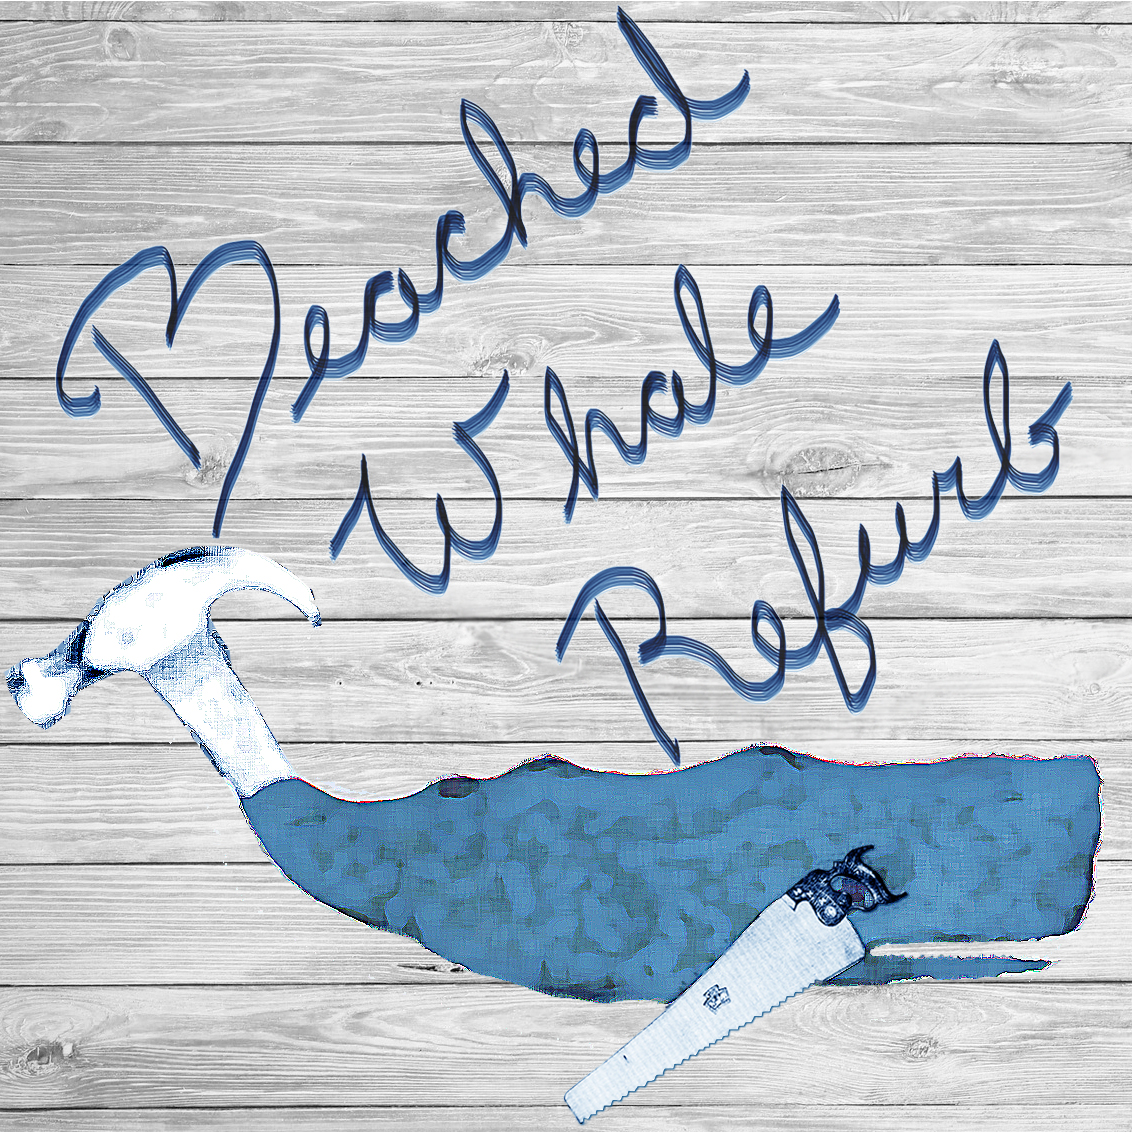 Beached Whale Refurb business logo